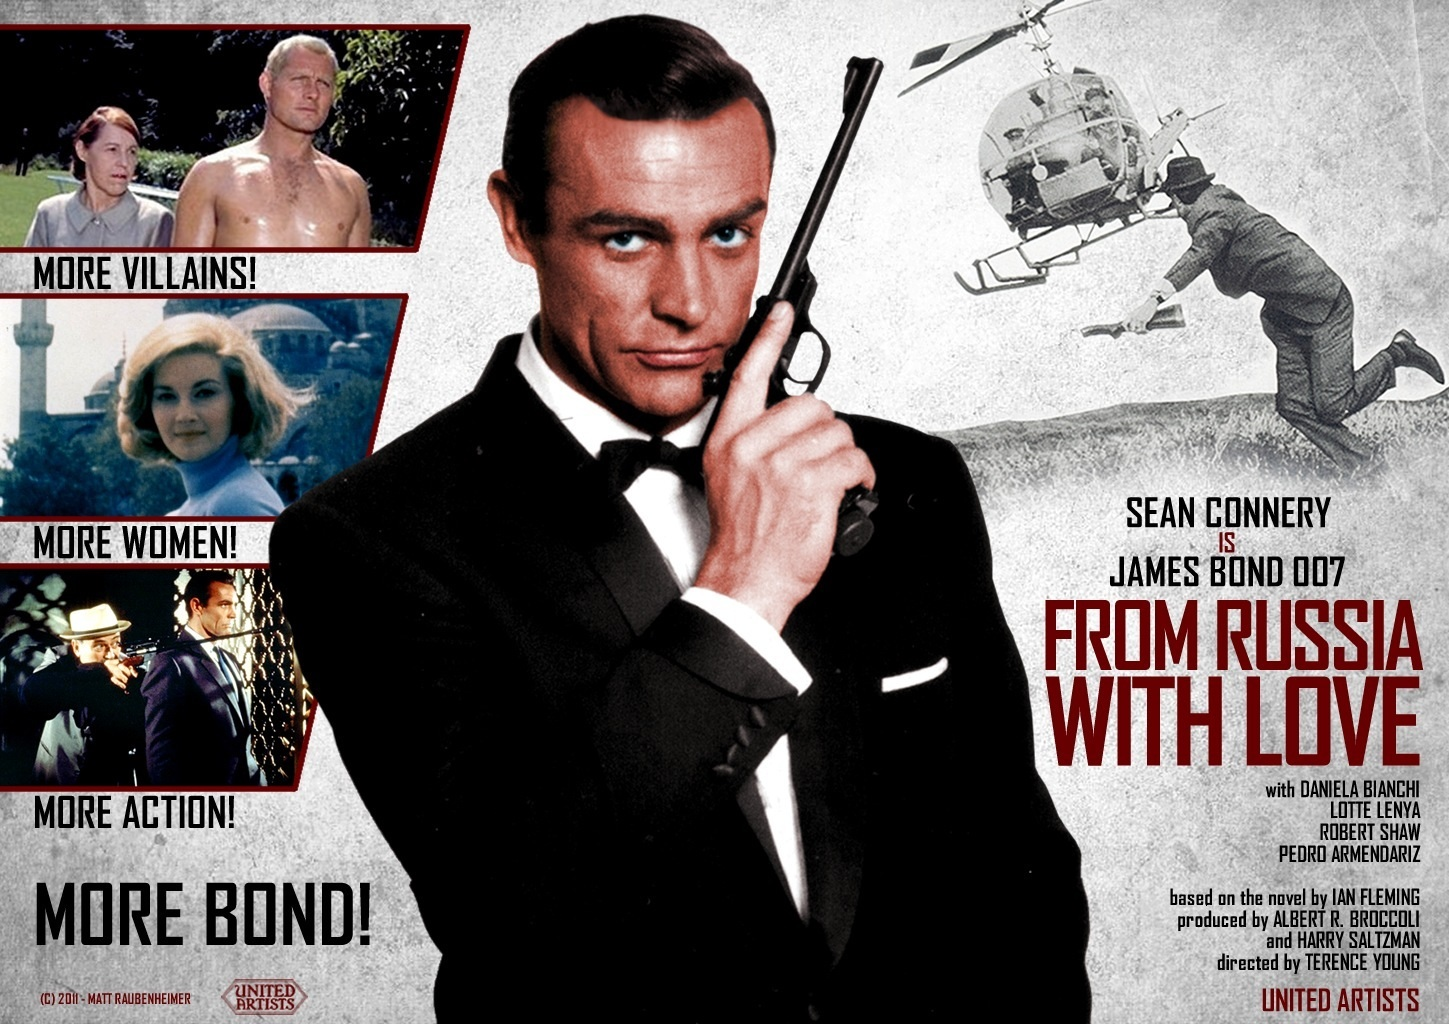 james bond images sean connery 007 hd wallpaper and background